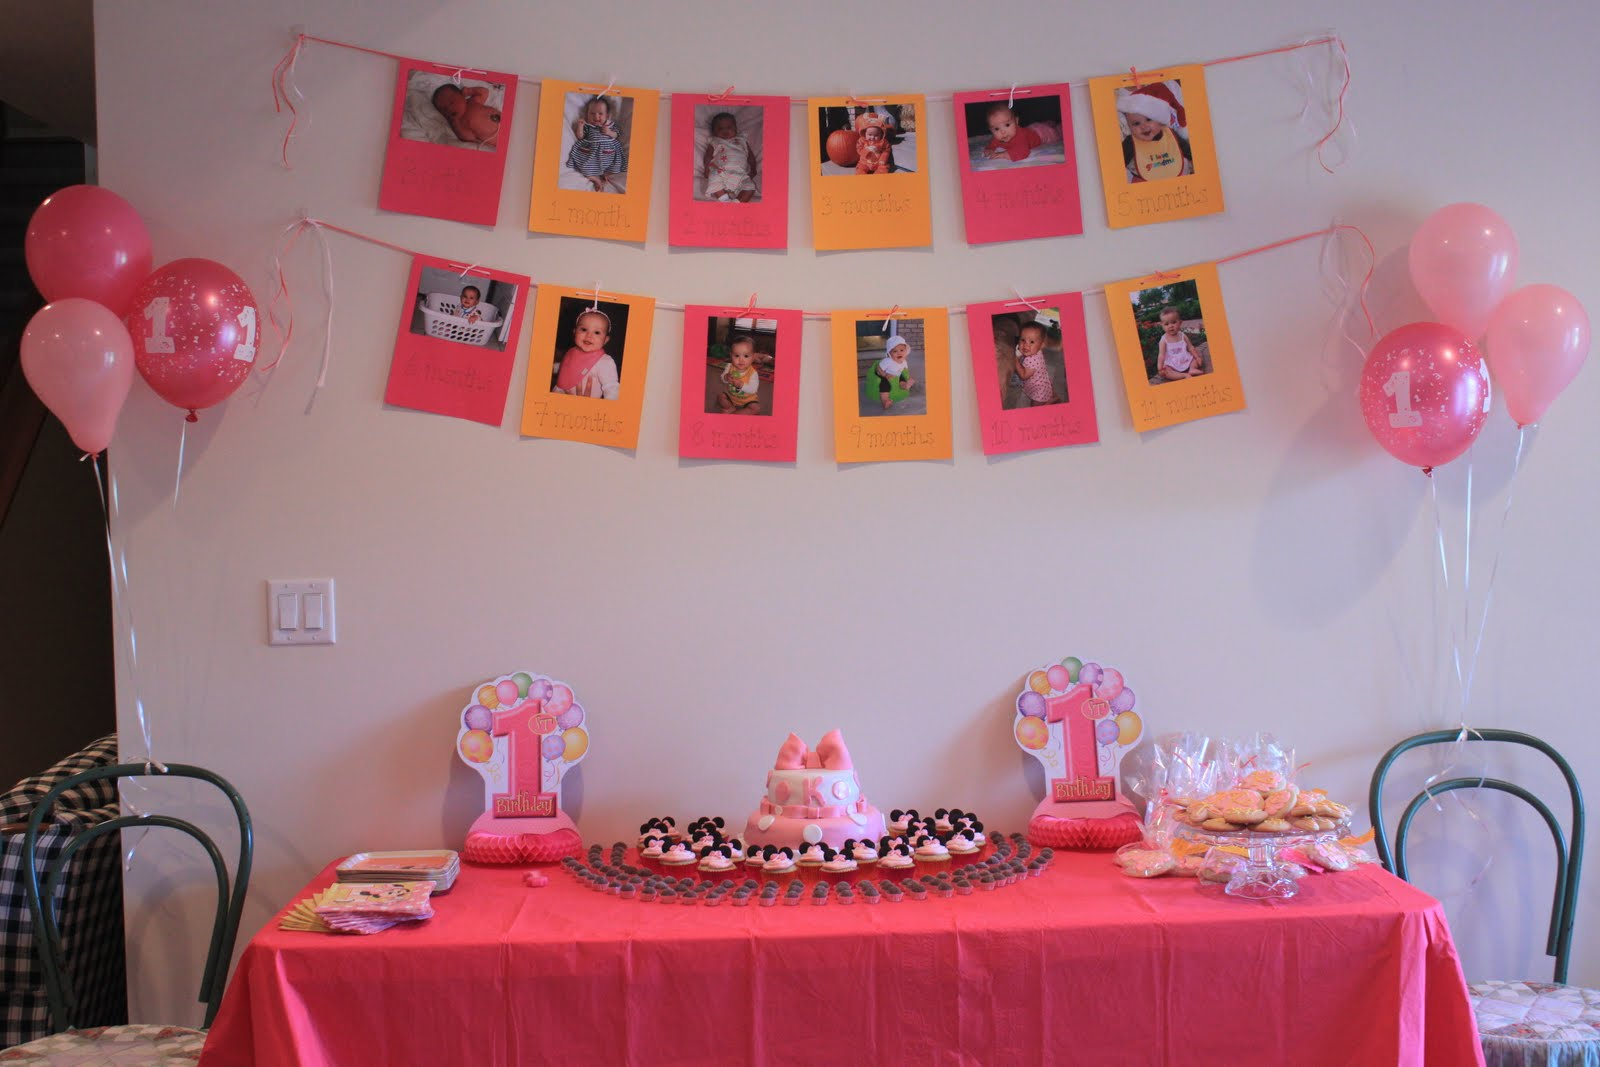 How to Celebrate a First Birthday Without a Party